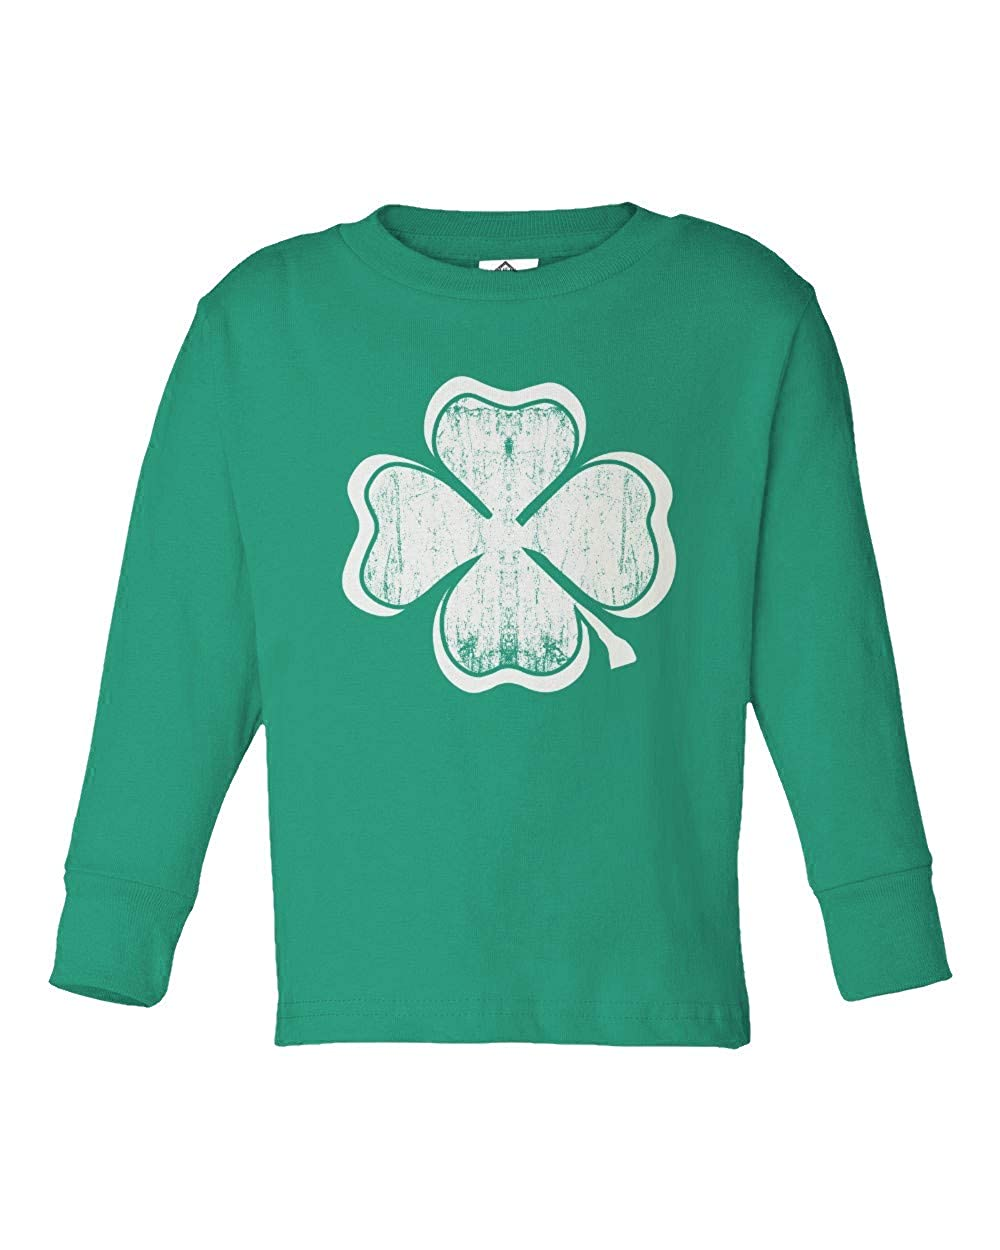 Sheki Apparel Distressed Green Four Leaf Clover Raw-Edge Toddler Long Sleeve T-Shirt